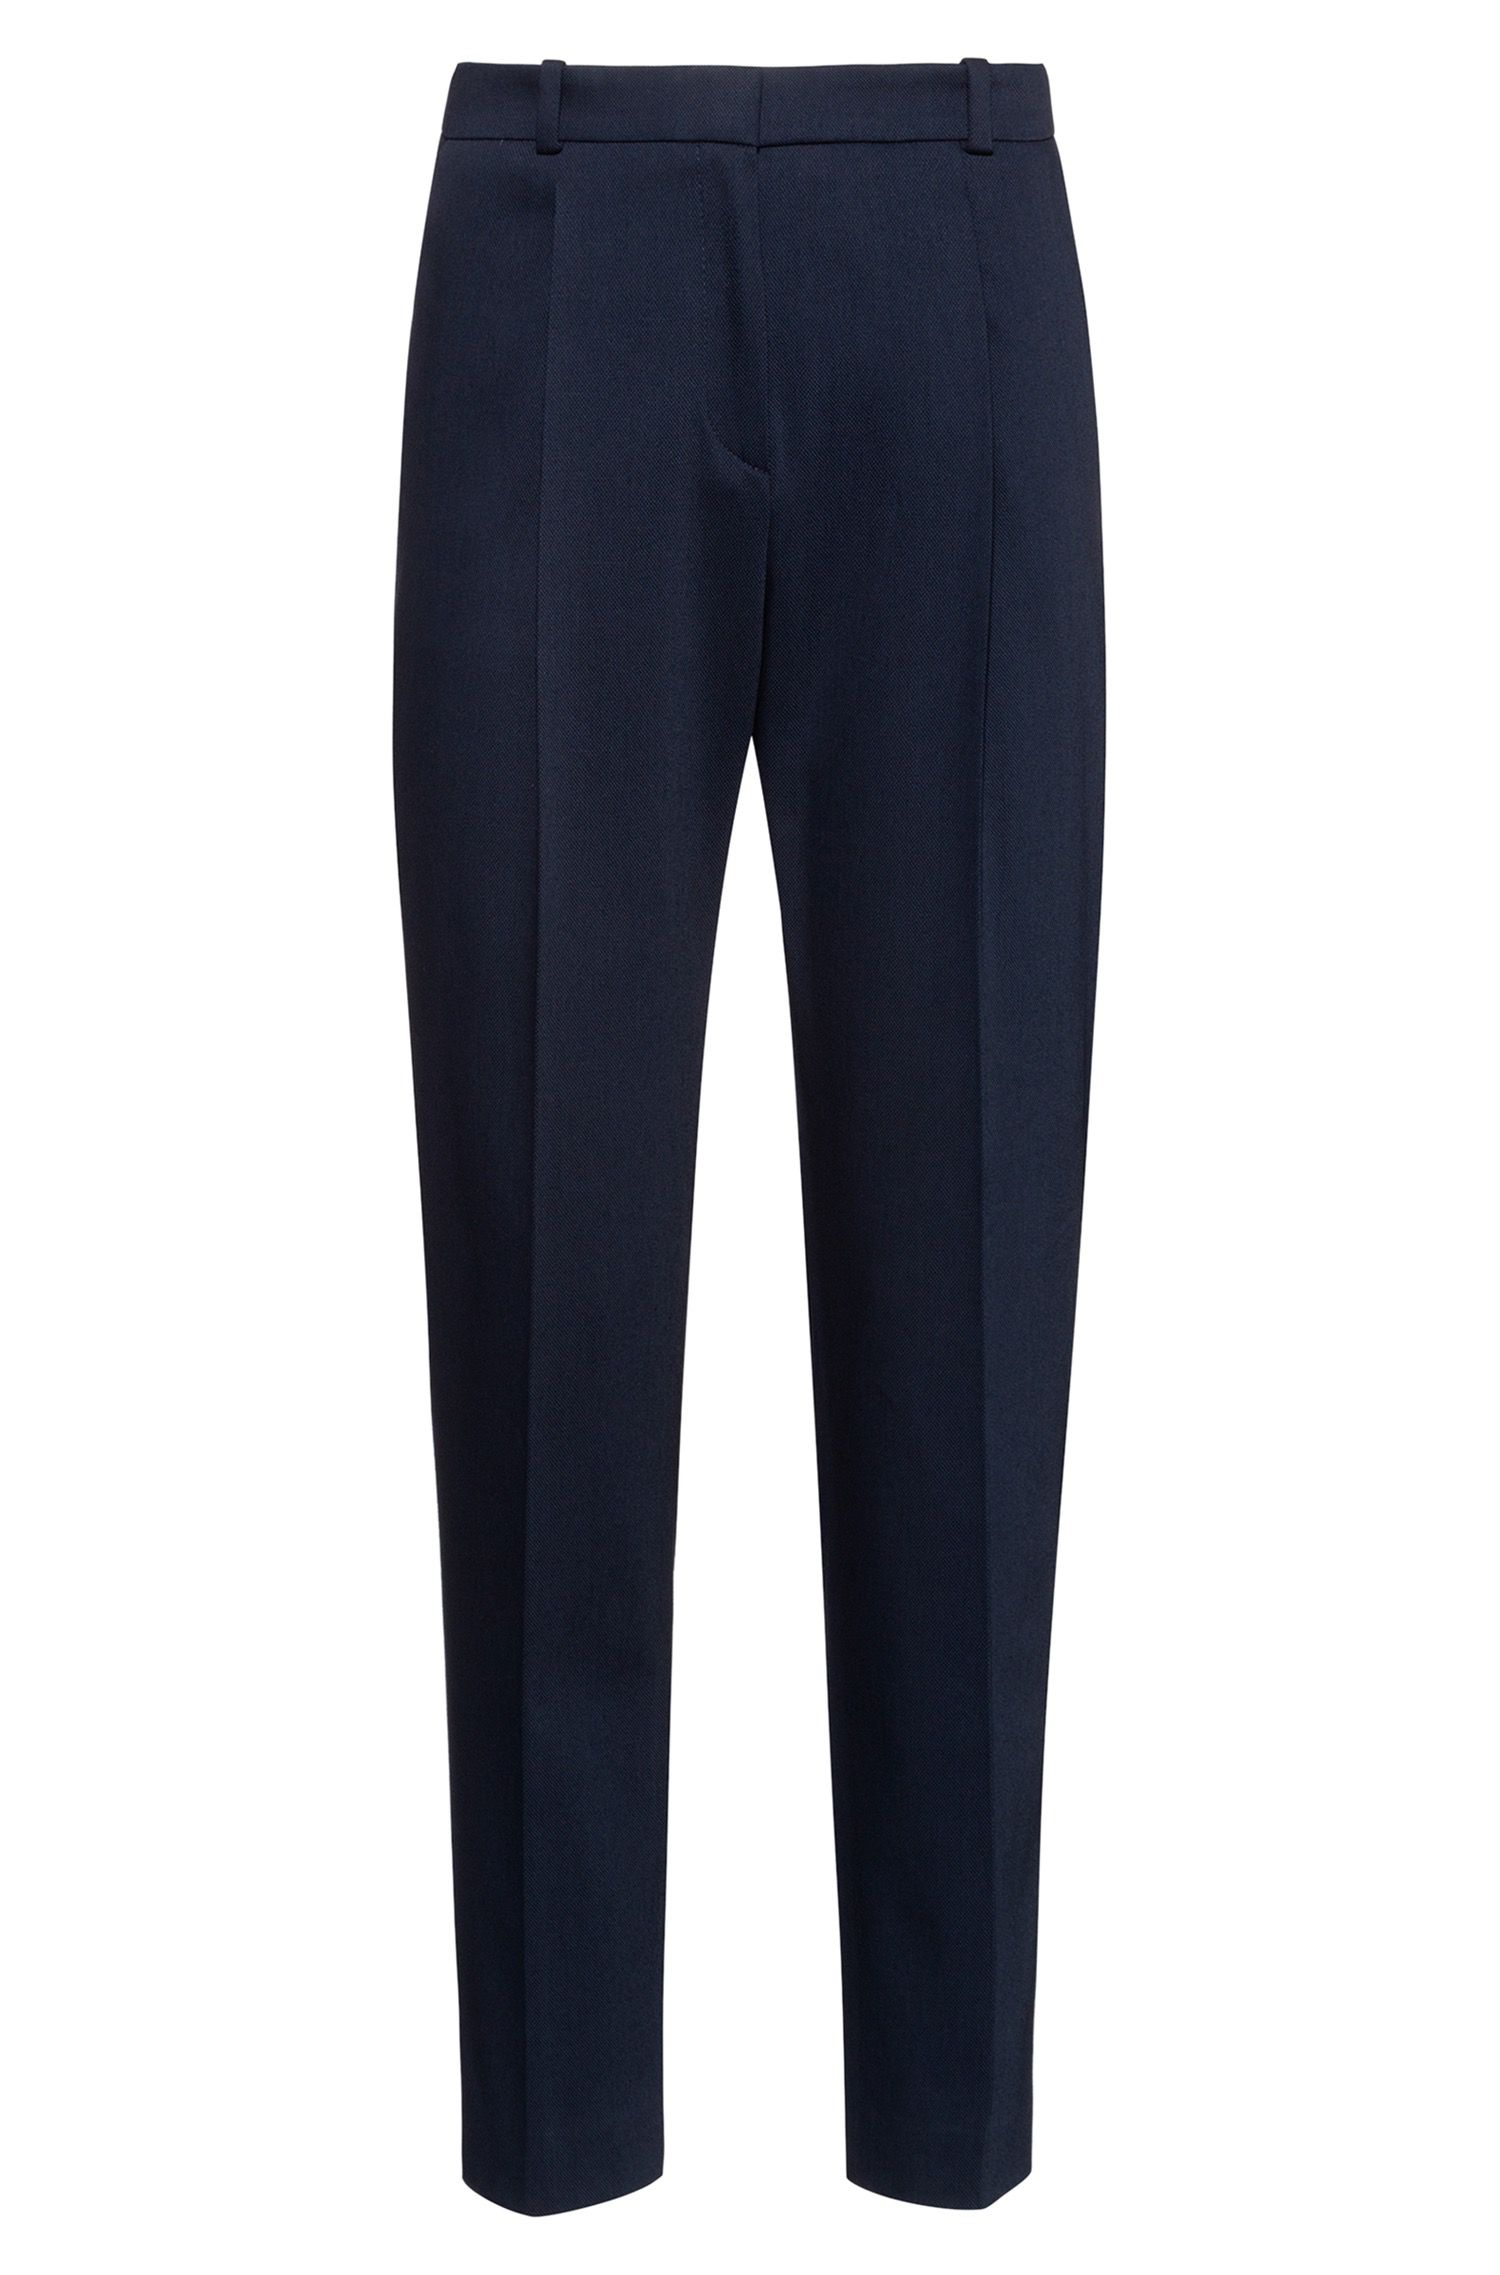 Pantalon Regular Fit en coton stretch structuré, Bleu foncé